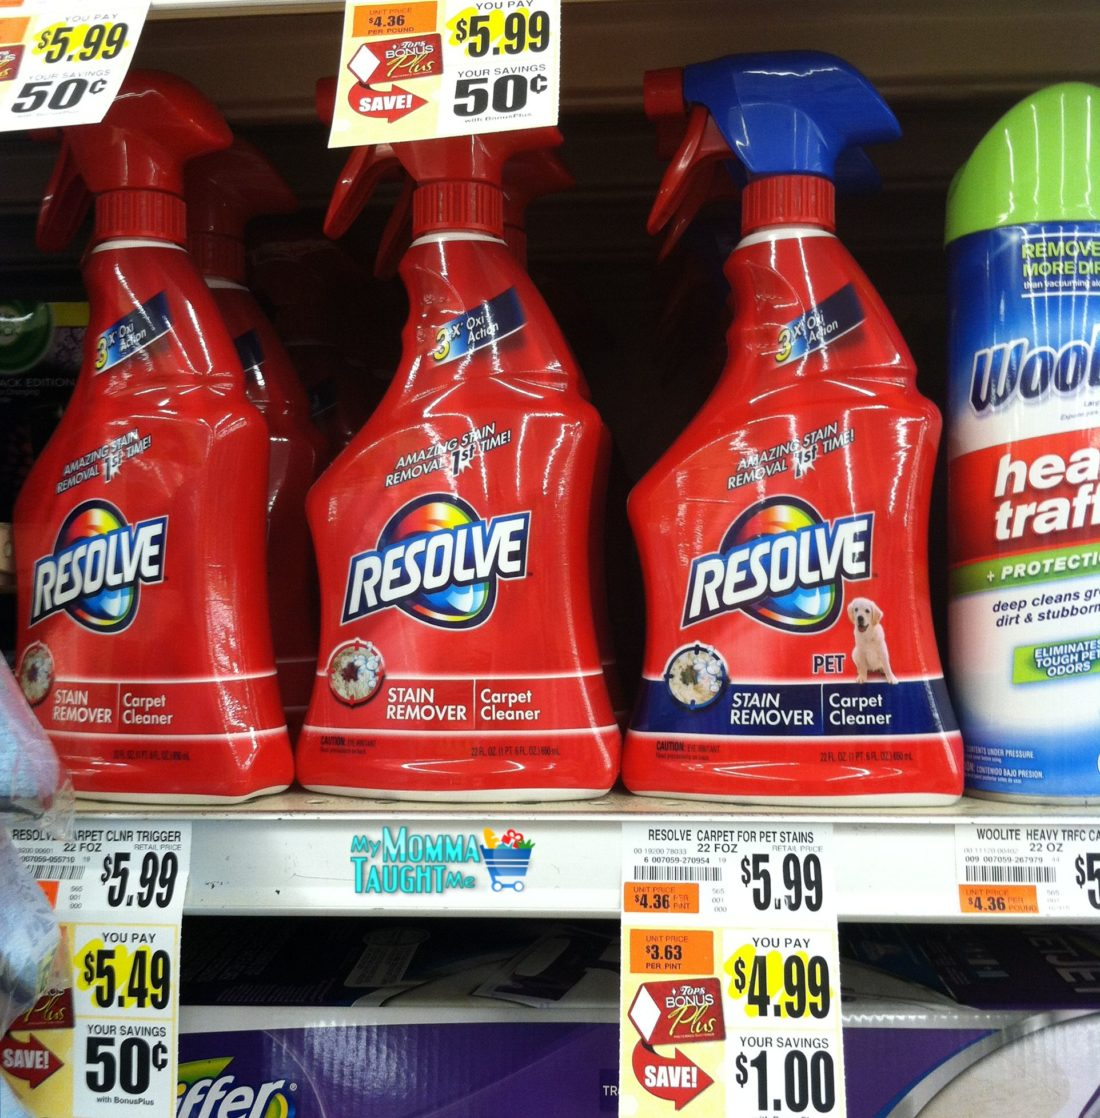 there was a nice u201ctry me freeu201d rebate on resolve laundry or carpet cleaner that came out in the 511 ss coupon insert you can find the following deal at